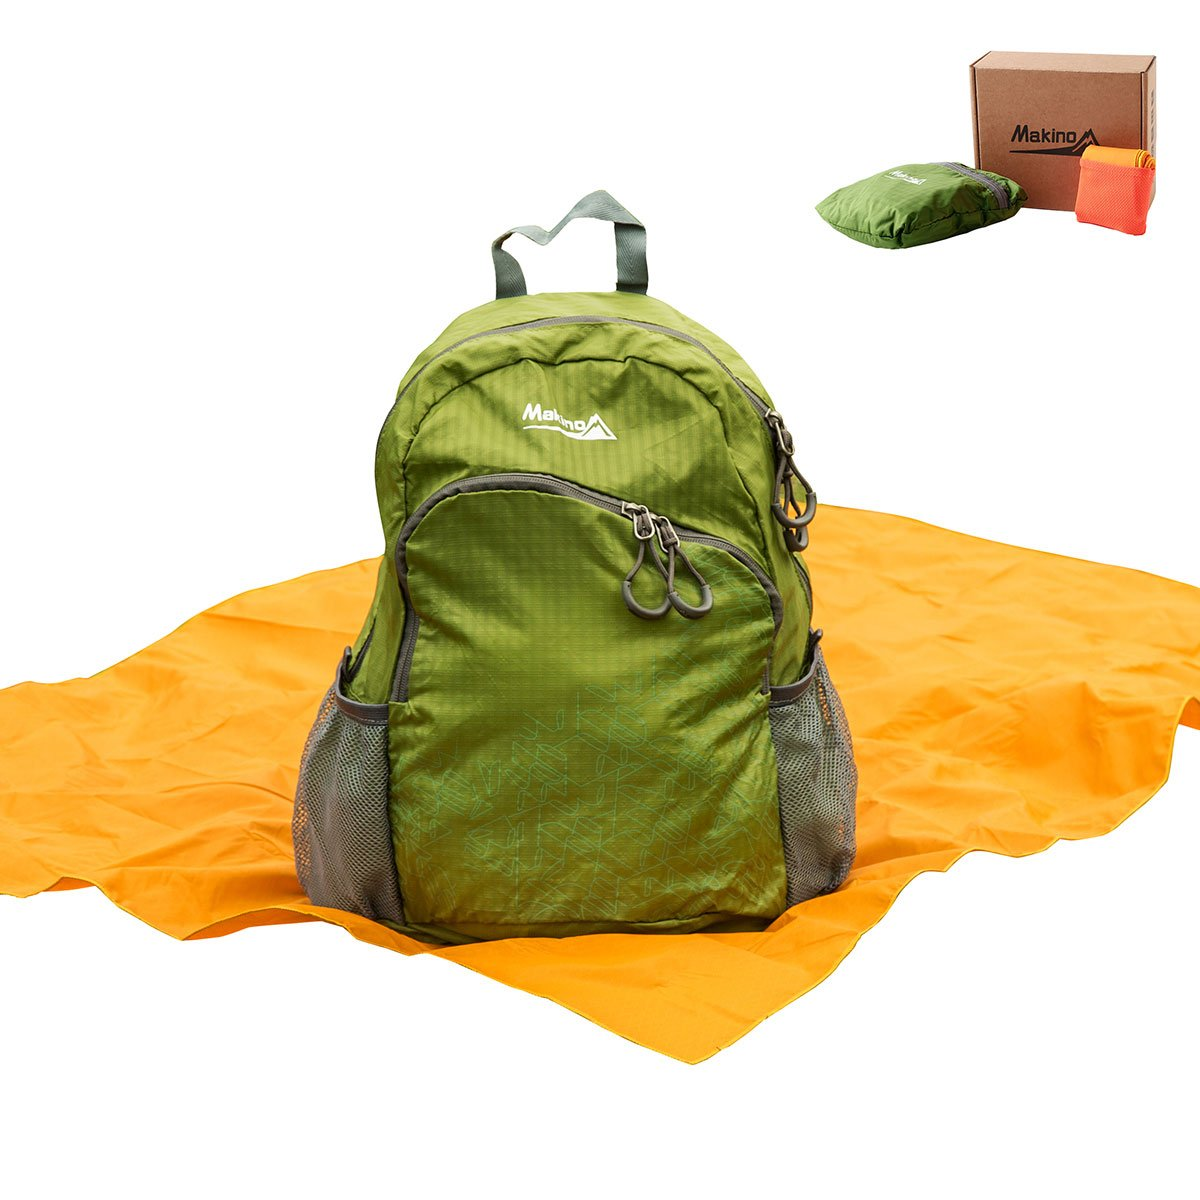 Makino Foldable Daypack Ultralight Packed with Pocket Blanket 5504 22 L Green with Blanket